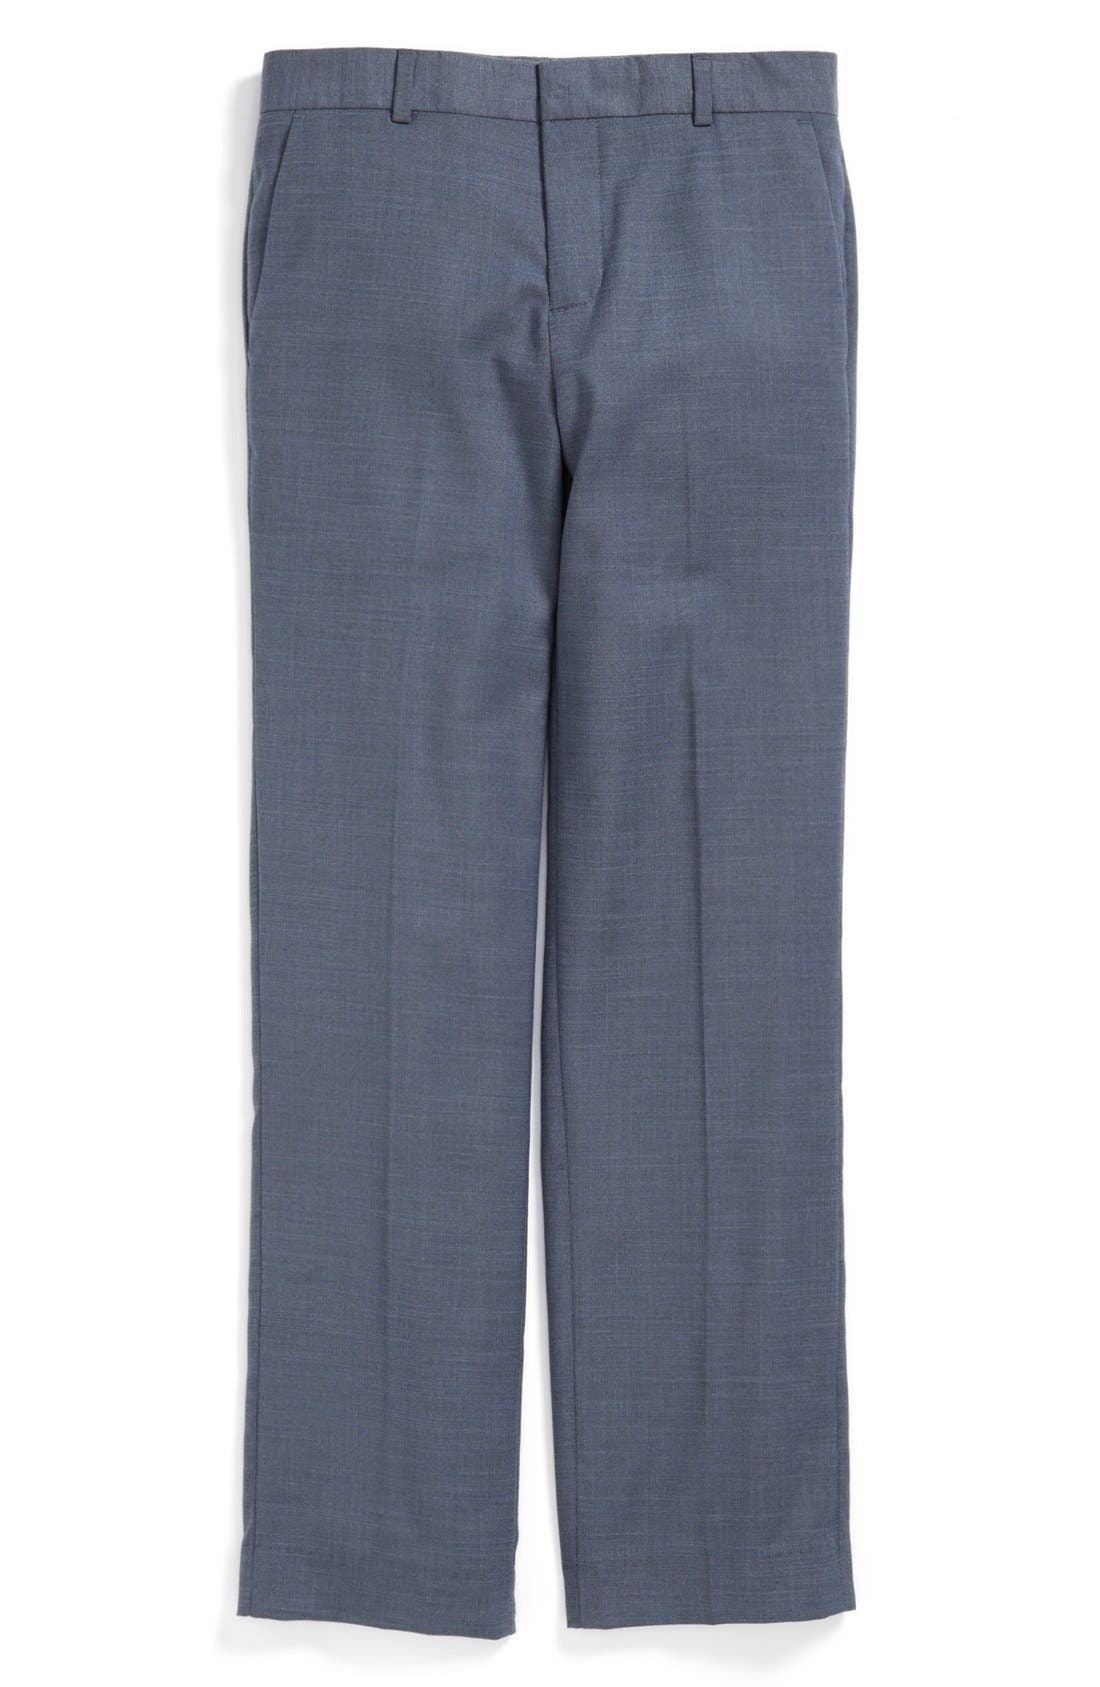 Alternate Image 1 Selected - C2 by Calibrate 'Sterling' Dress Pants (Big Boys)